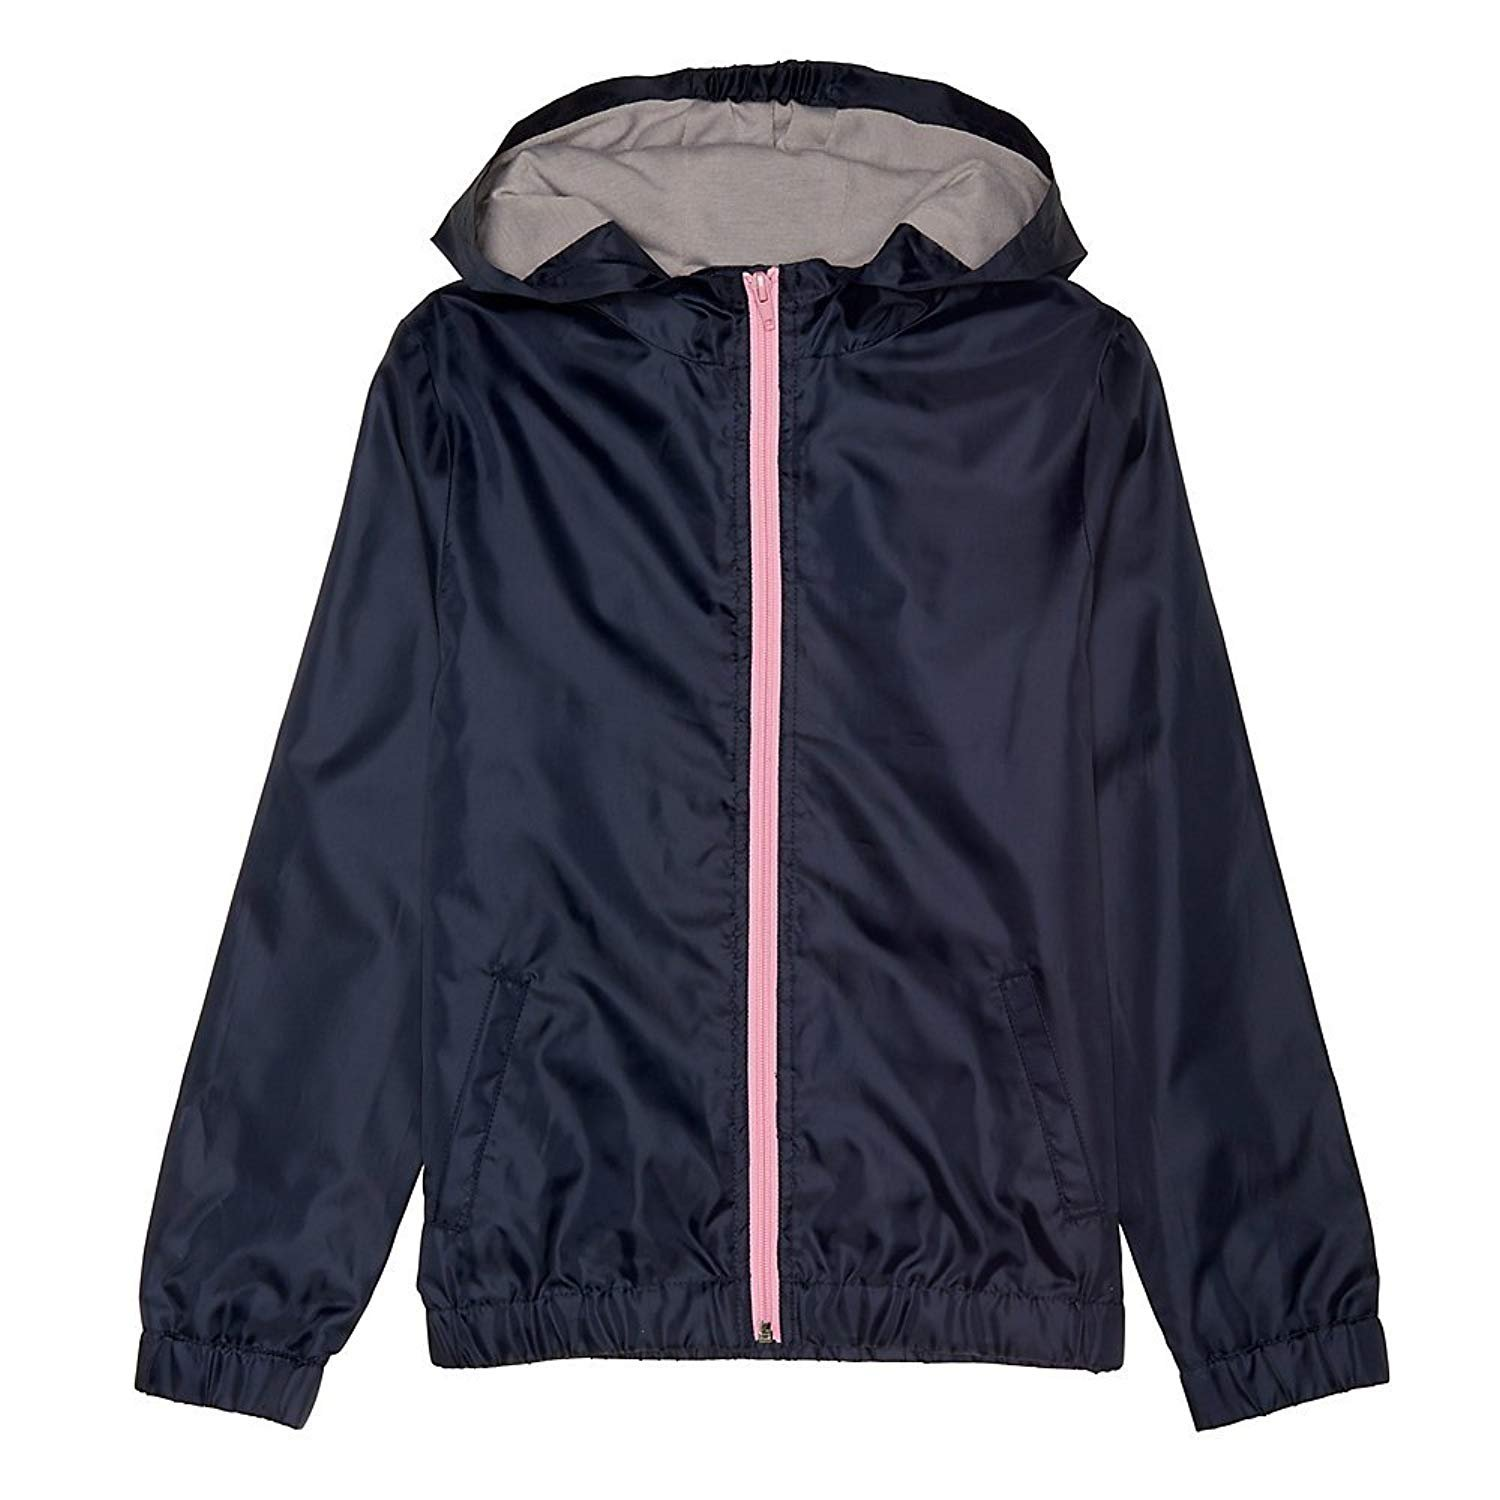 French Toast Big Girls' Windbreaker, Navy, L (10/12) by French Toast